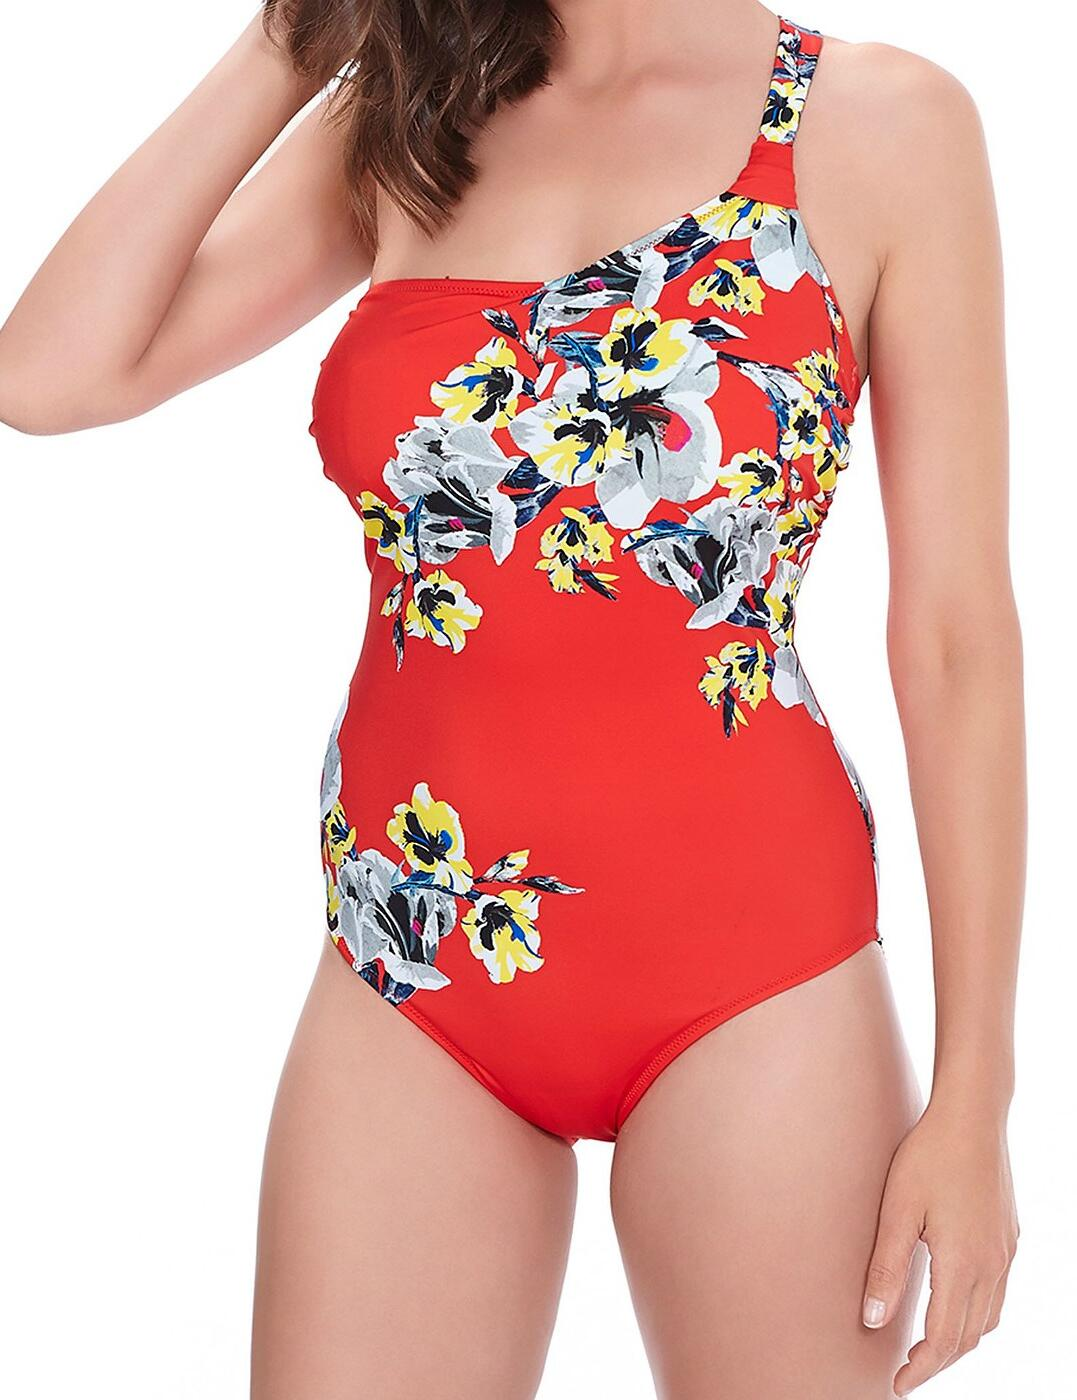 6263 Fantasie Calabria Underwired Asymmetric Swimsuit - 6263 Red